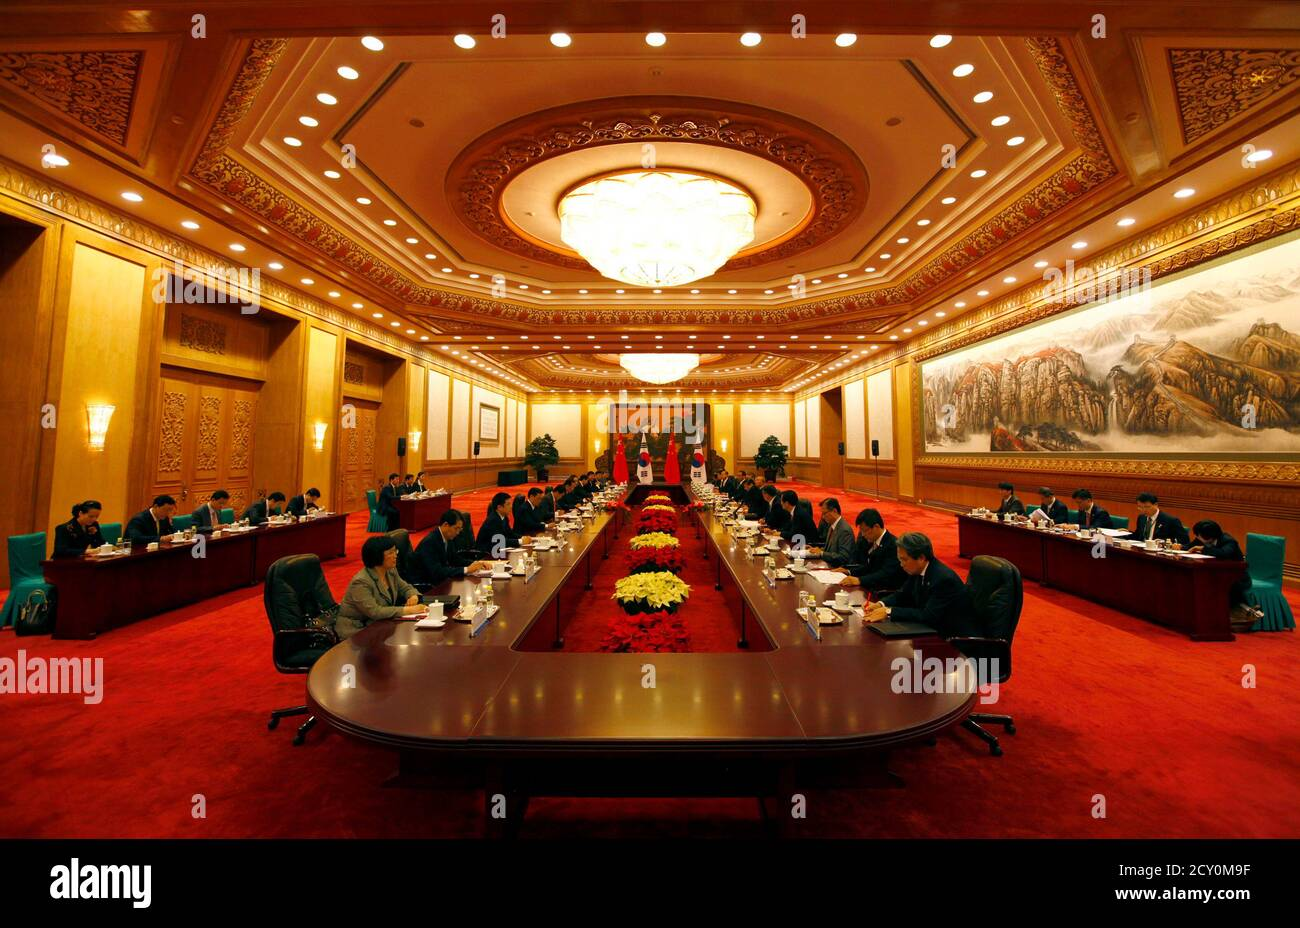 South Korea's Prime Minister Kim Hwang-Sik sits opposite China's Premier Wen Jiabao during their meeting in the Great Hall of the People in Beijing April 13, 2011. Kim is on a four-day official visit to China.    REUTERS/David Gray    (CHINA - Tags: POLITICS) Banque D'Images